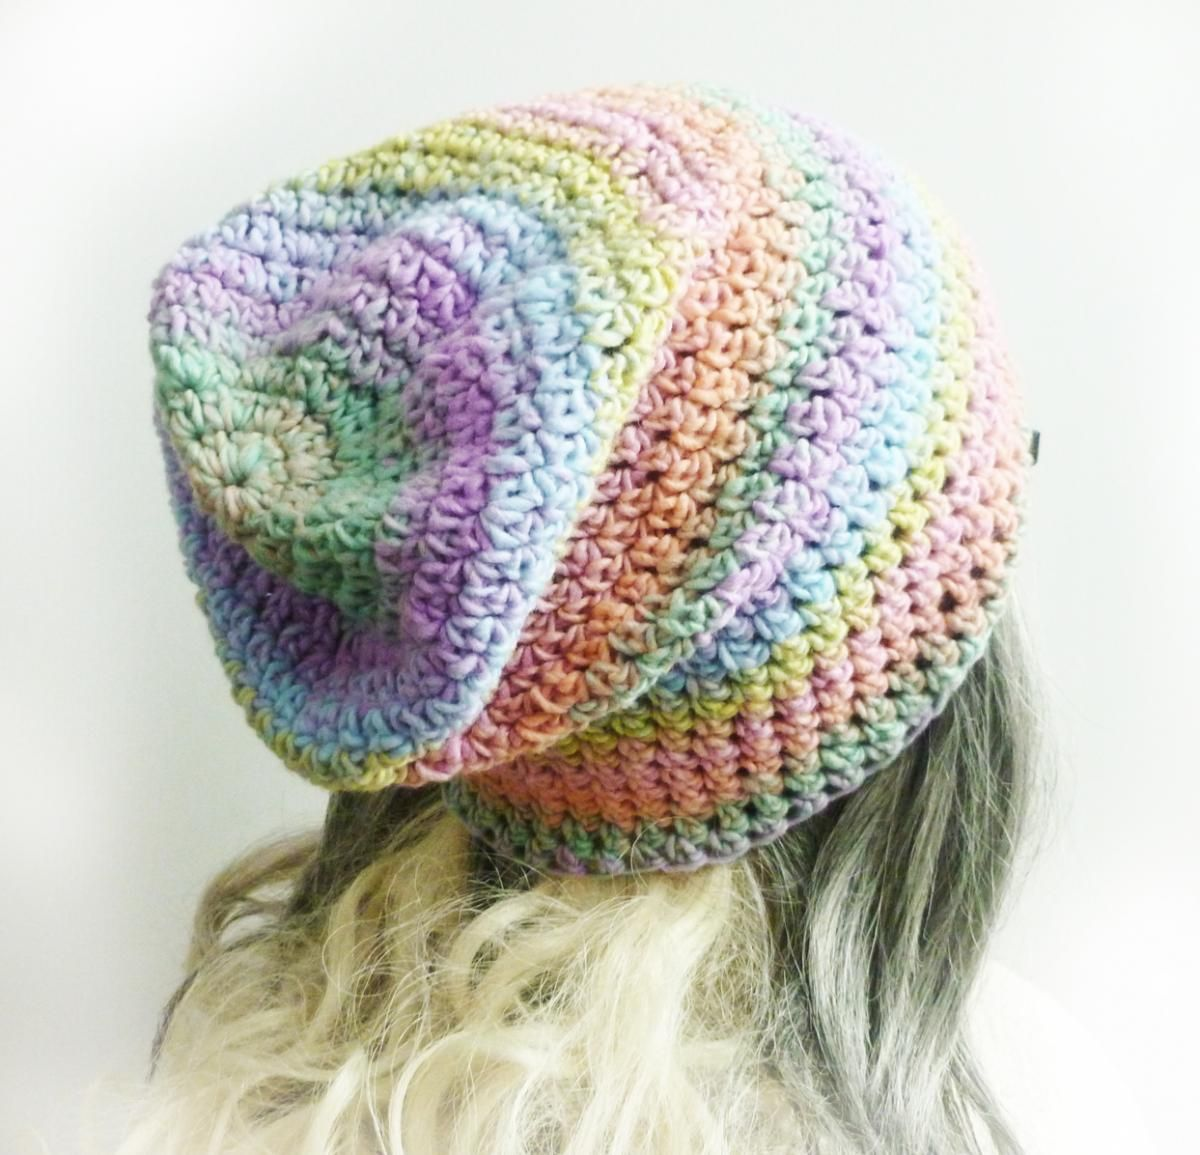 a9a76d8fcc4 Pastel Rainbow Beanie Pink Girl Slouchy Beanie Women Hat Soft Crochet Beanie  Spring Fashion Yellow M on Luulla by Pina Colada